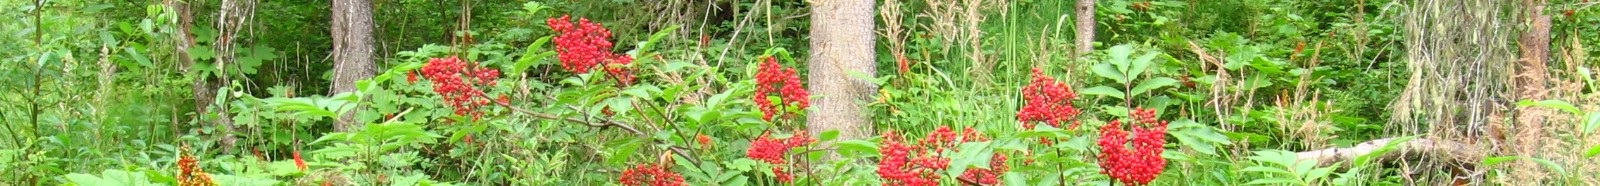 Wild Berry Bunches - Probably Poisonous